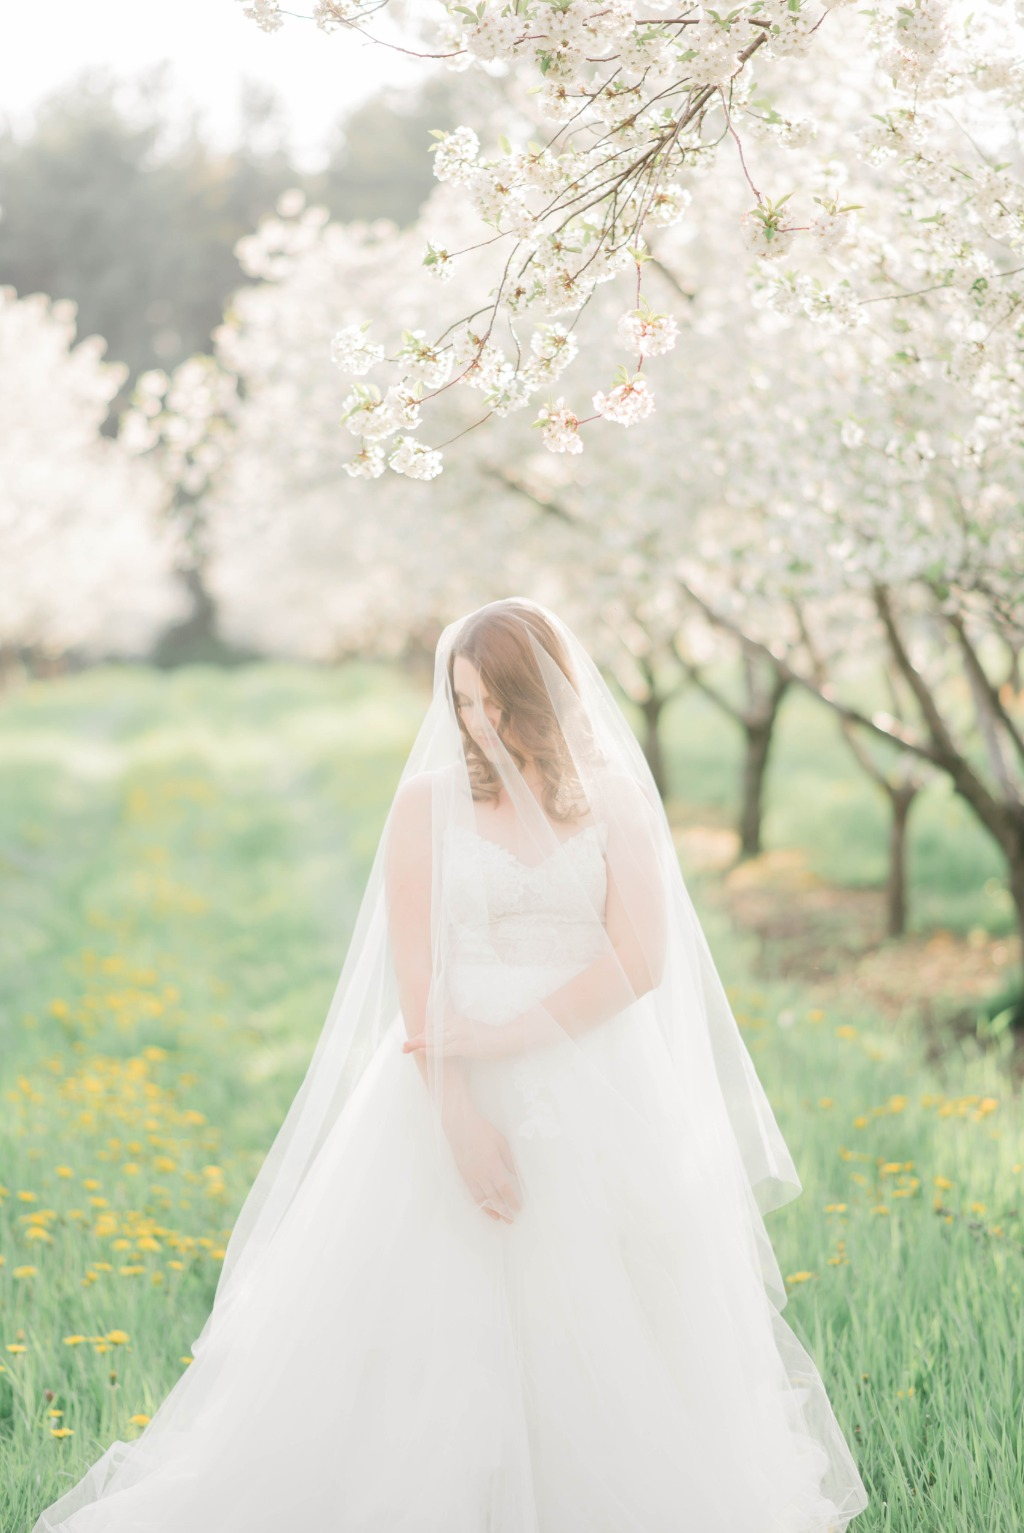 Orchard Wedding Editorial. Wedding dress: Astrid & Mercedes Romance | veil: Noon on the Moon | photography + planning: C&E